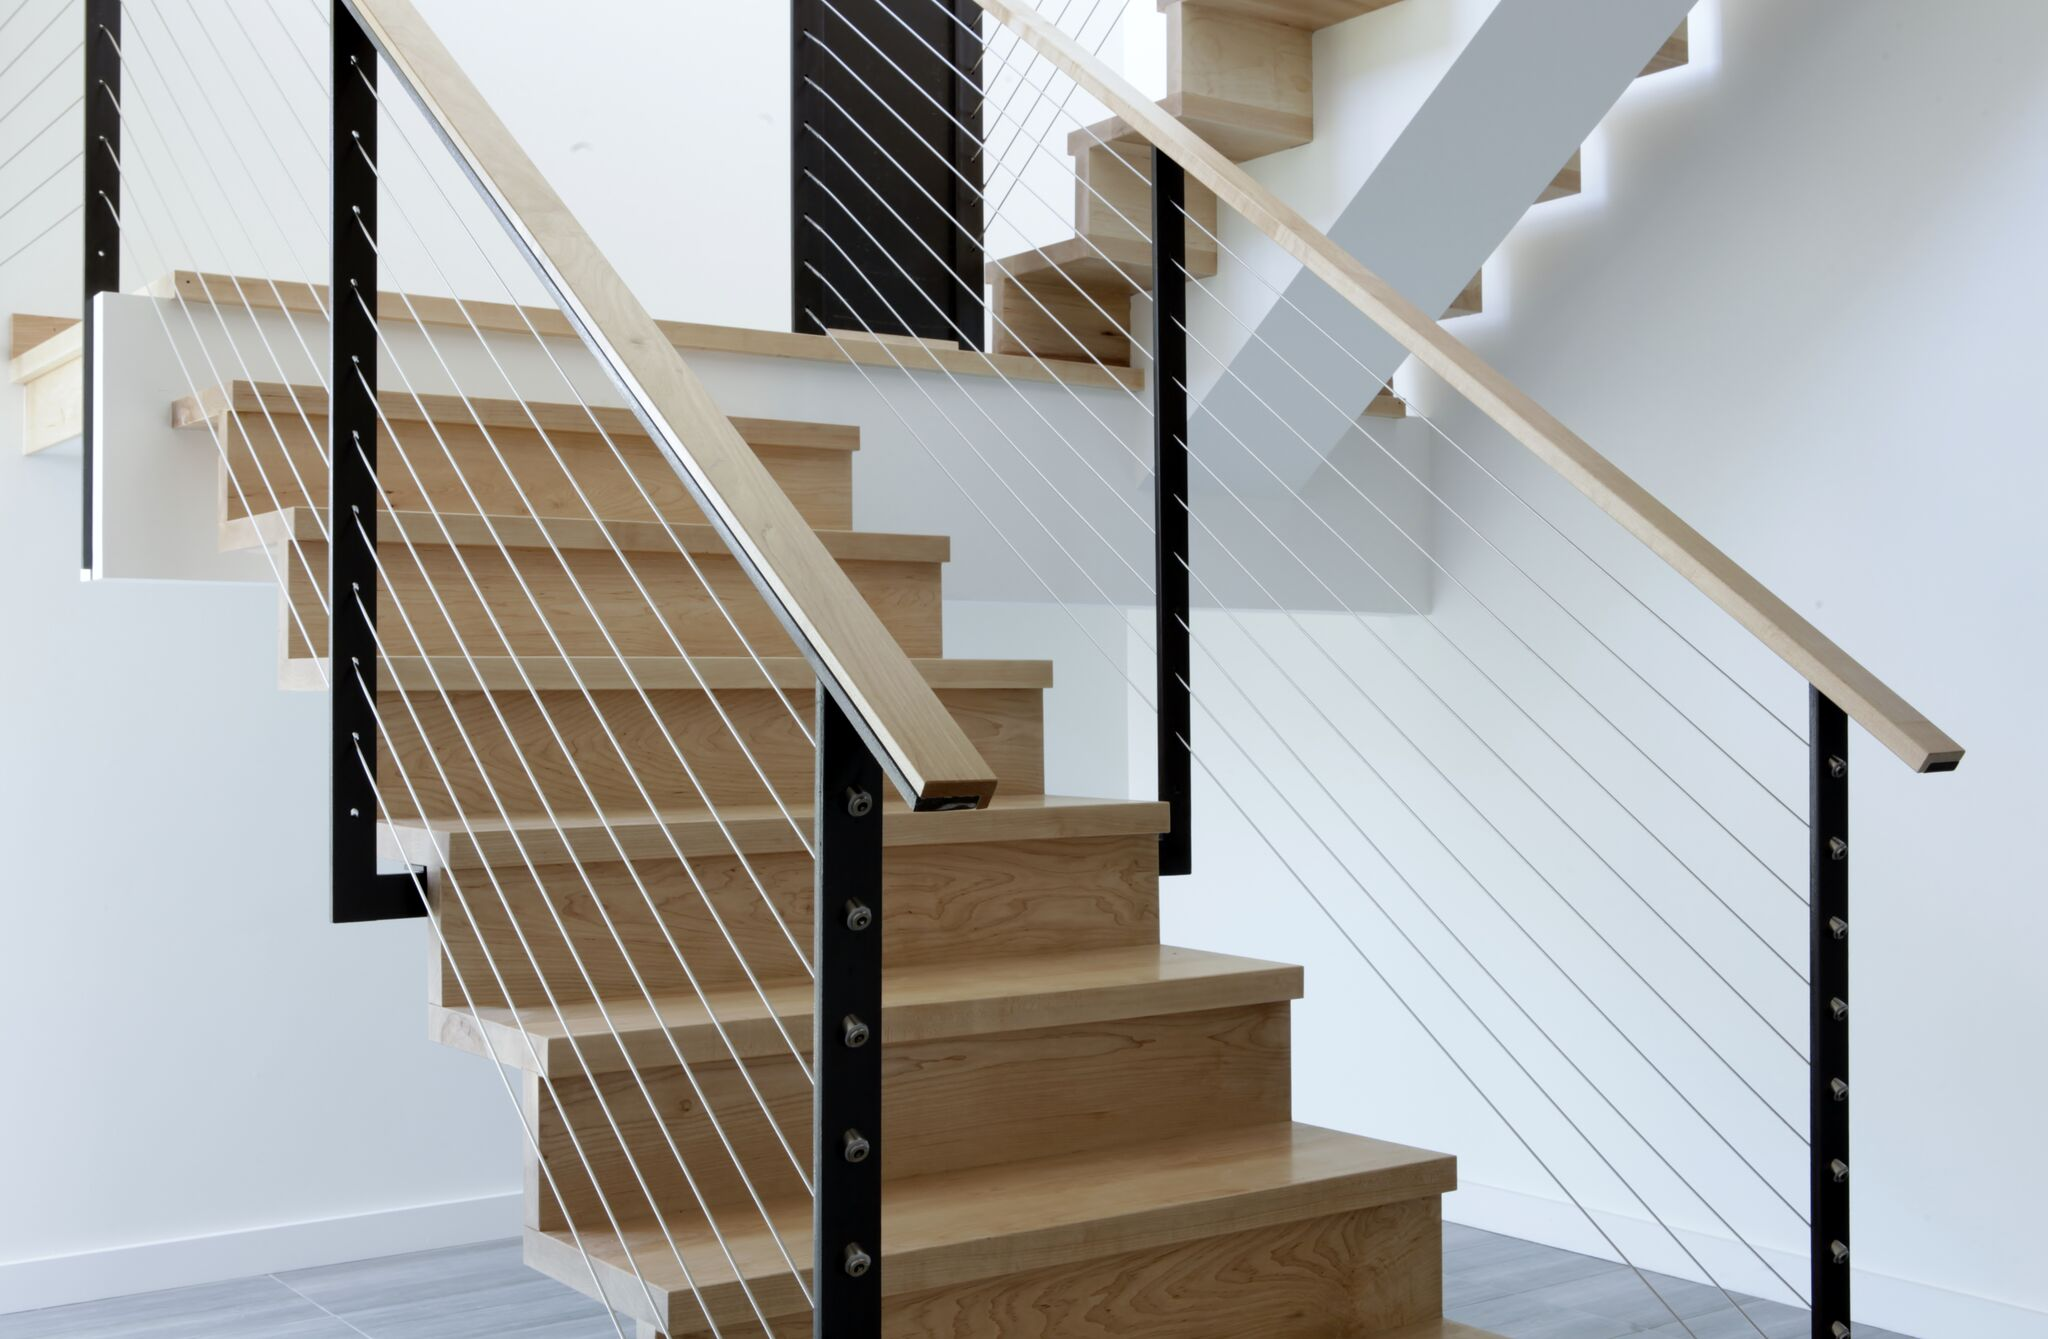 Copy of stair1_preview.jpg